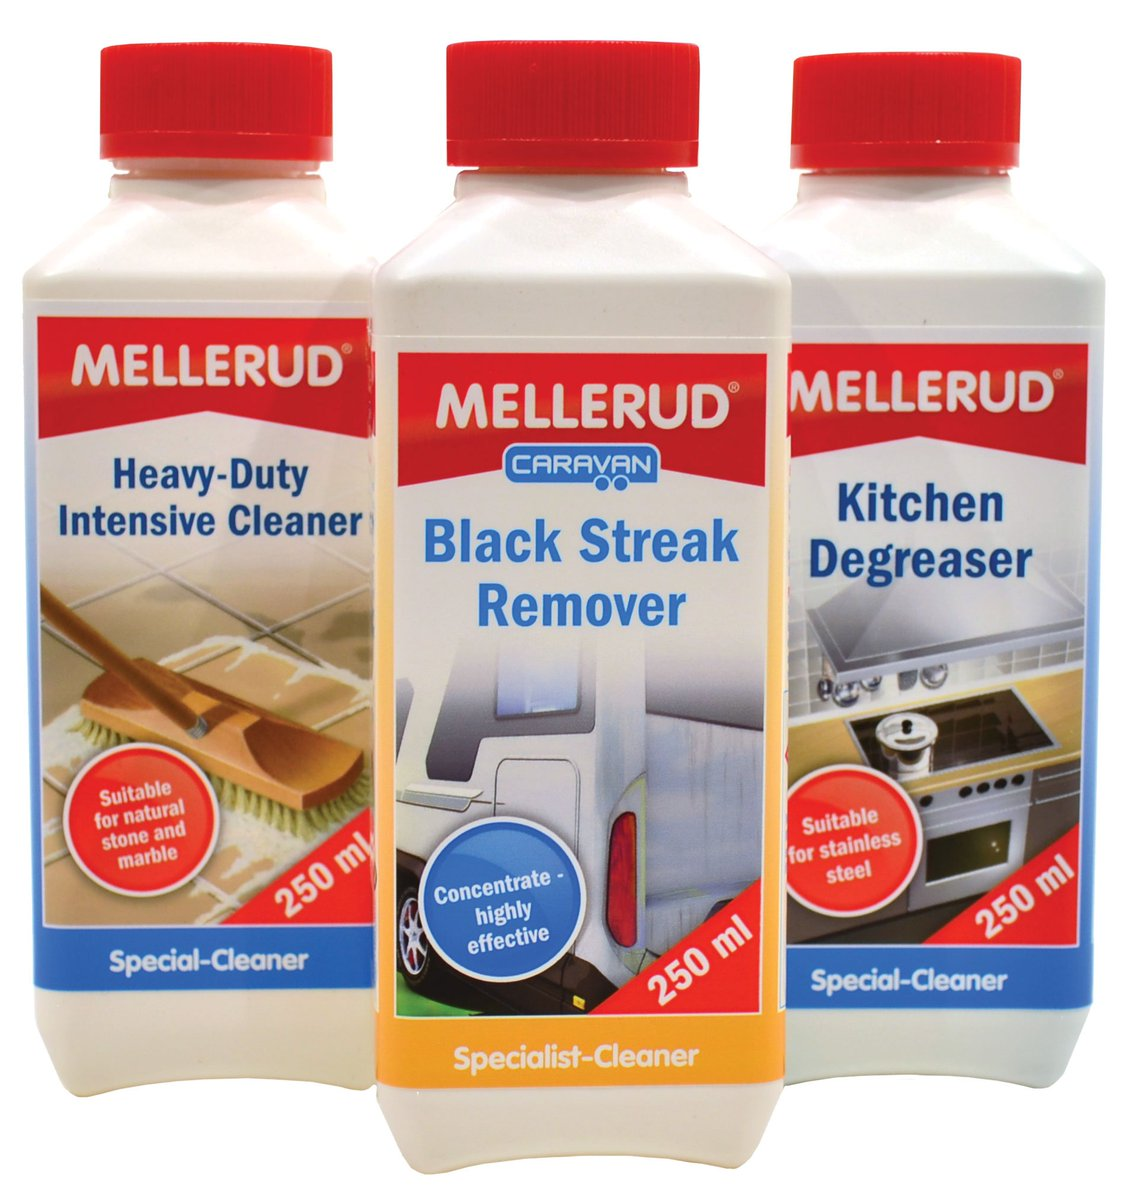 #CompetitionTime  Don't forget to enter this week's #Giveaway one Mellerud sample pack, to enter simple RT, Like and Comment #MELLERUD19  Ends 13 January   #Prize #Competition #Enter #Winner #Cleaning #Household #Caravan #Motorhome #January #Outdoorlife<br>http://pic.twitter.com/xZTtQUzxhE